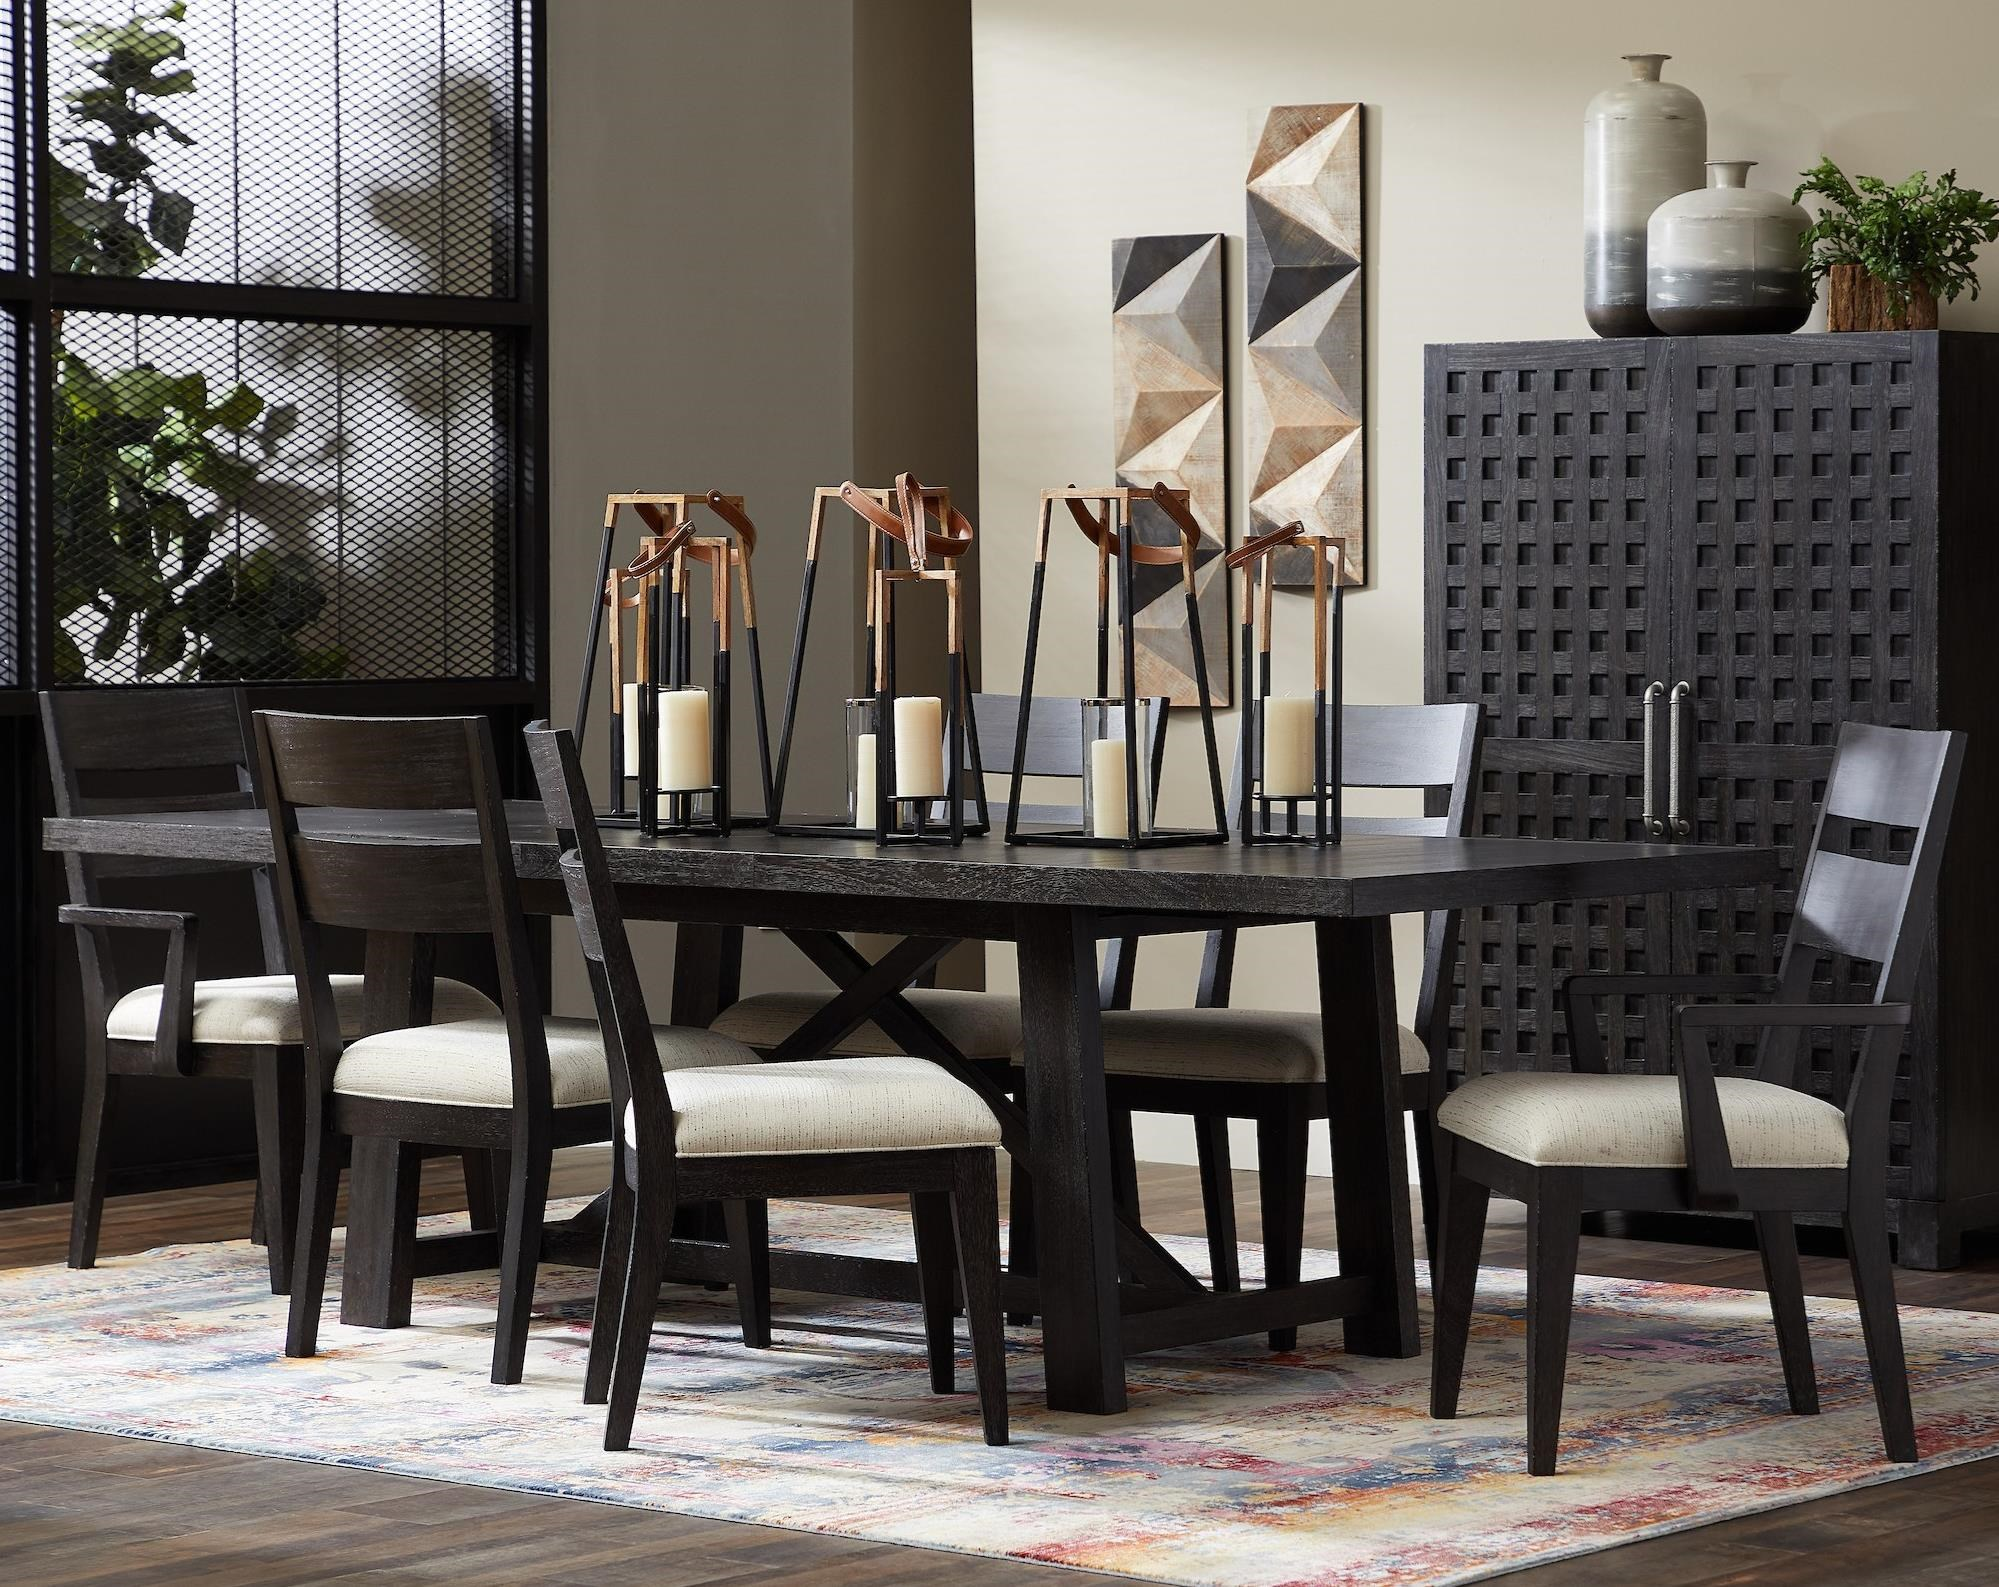 City Limits 7-Piece Outdoor Dining Set by Trisha Yearwood Home Collection by Klaussner at Powell's Furniture and Mattress